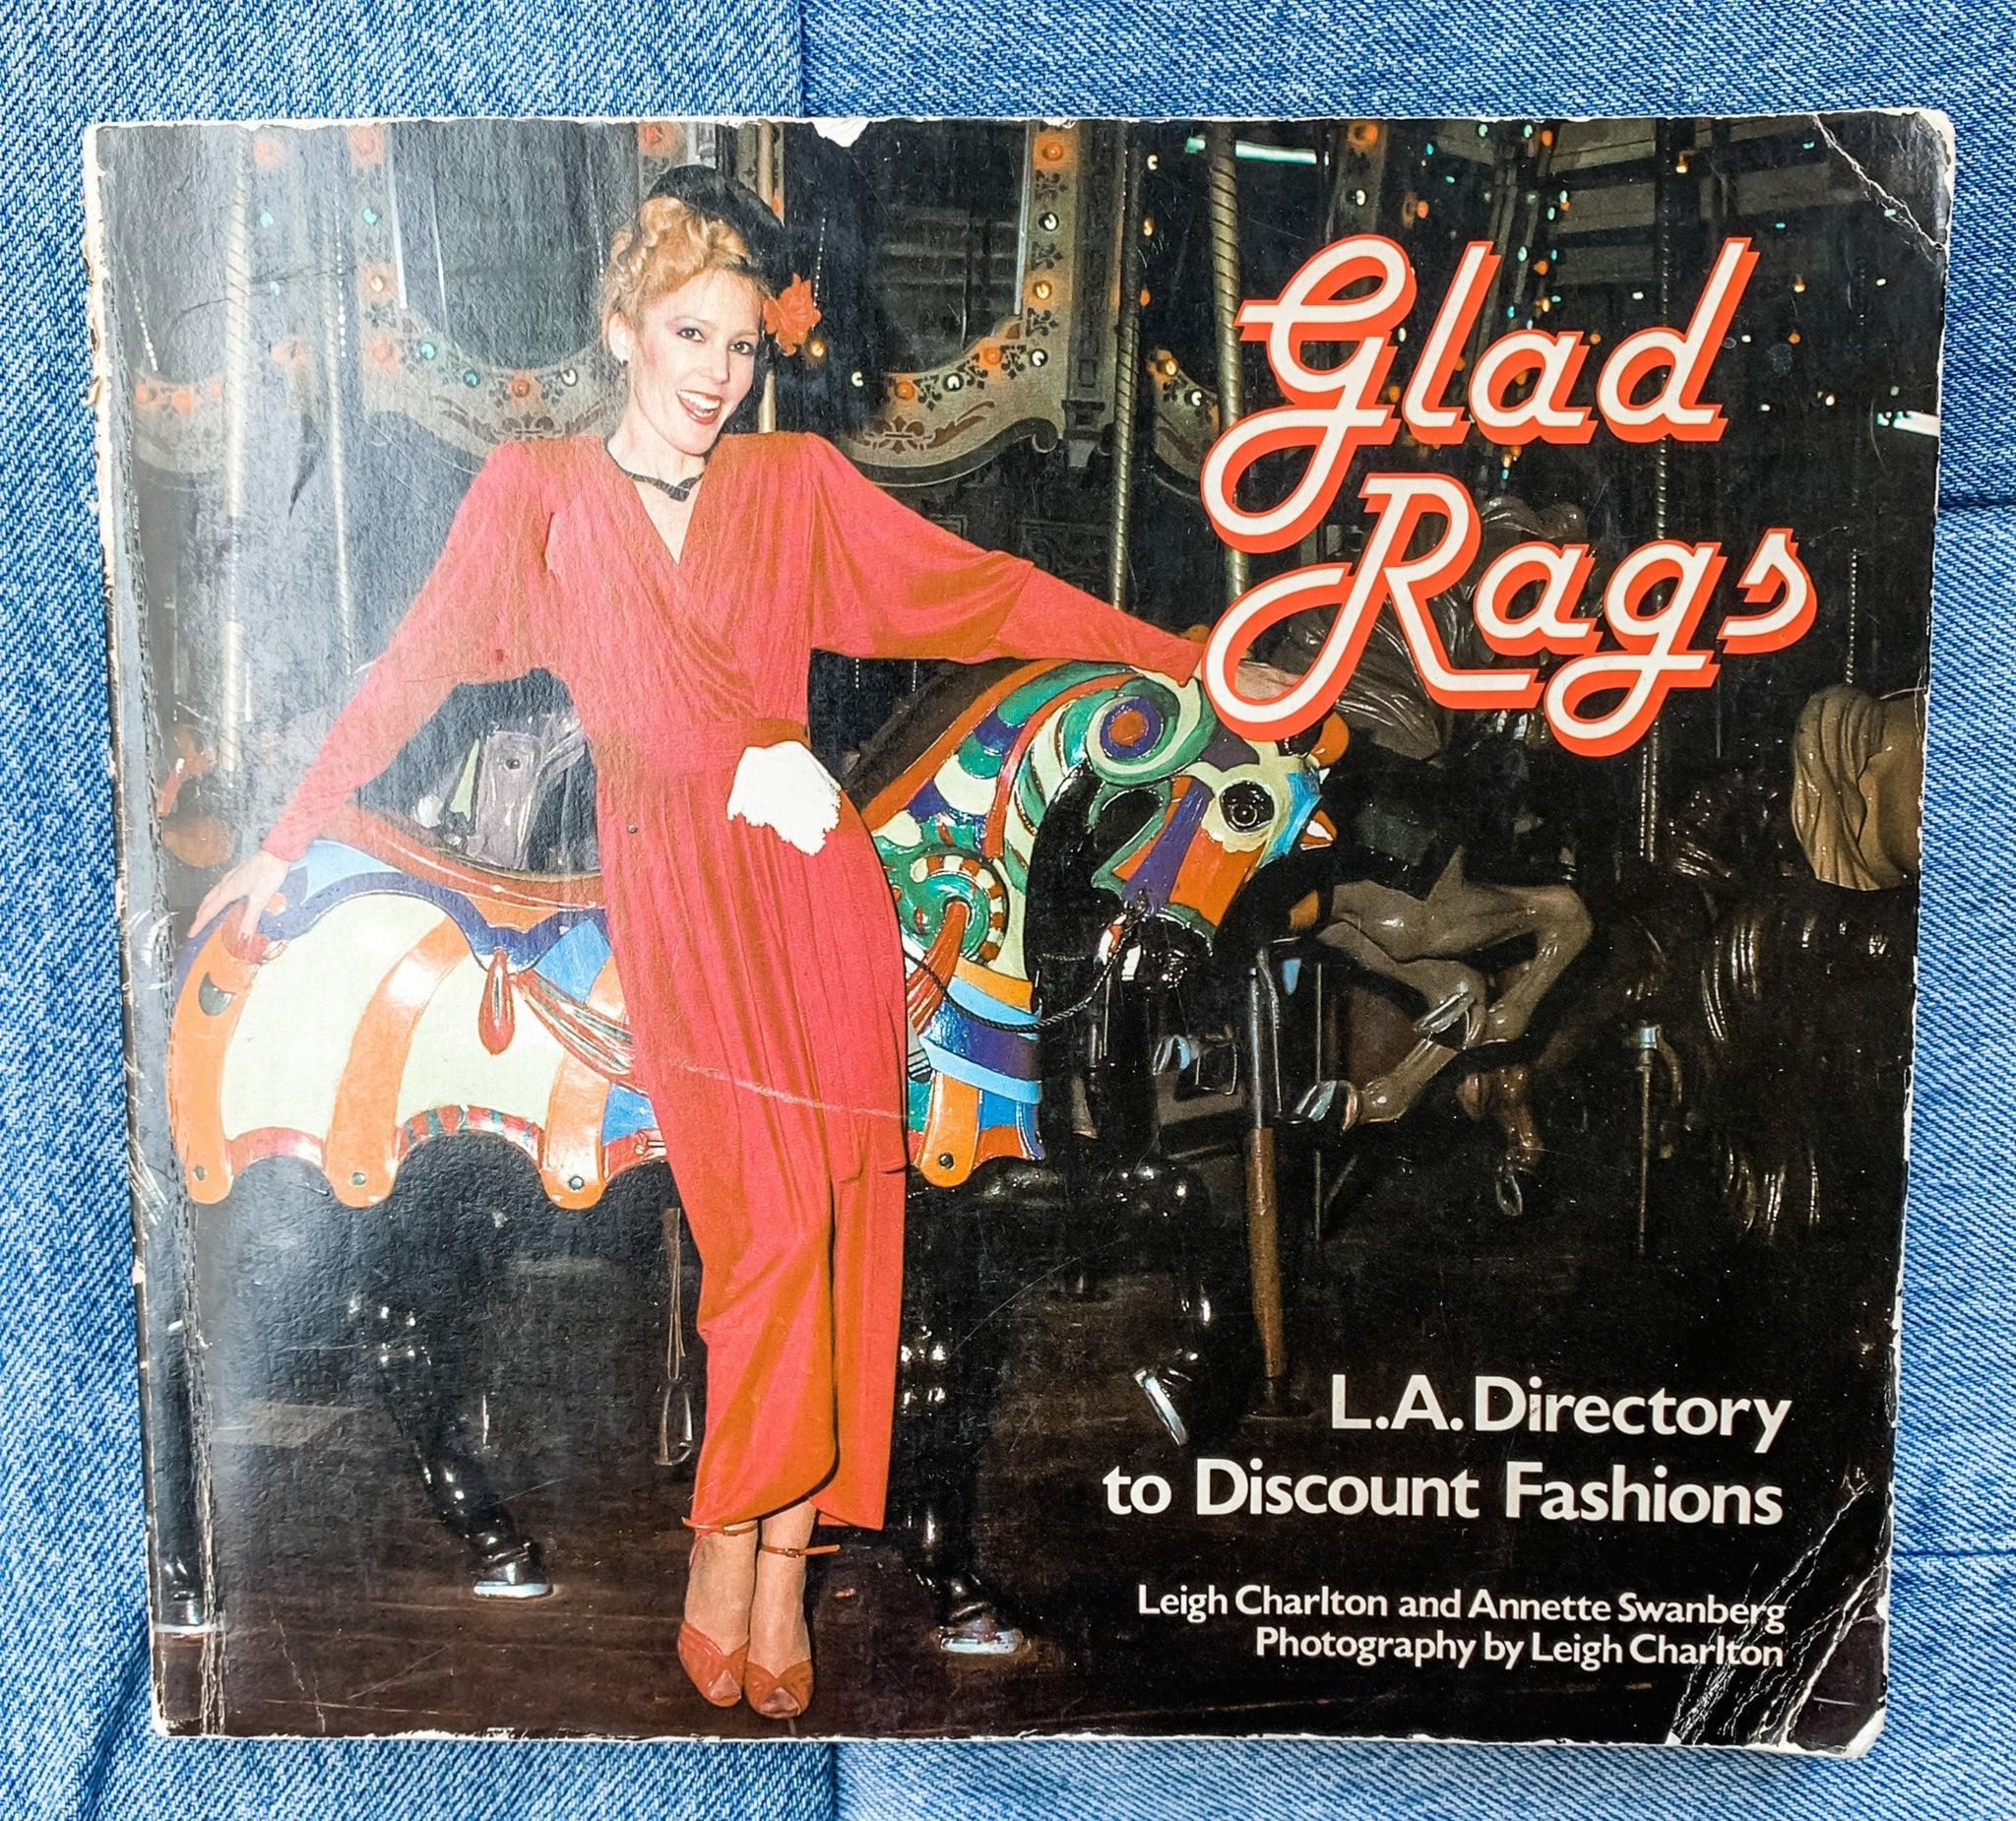 Glad Rags: A Guide to Discount Fashions in LA - My Best Vintage Life Podcast